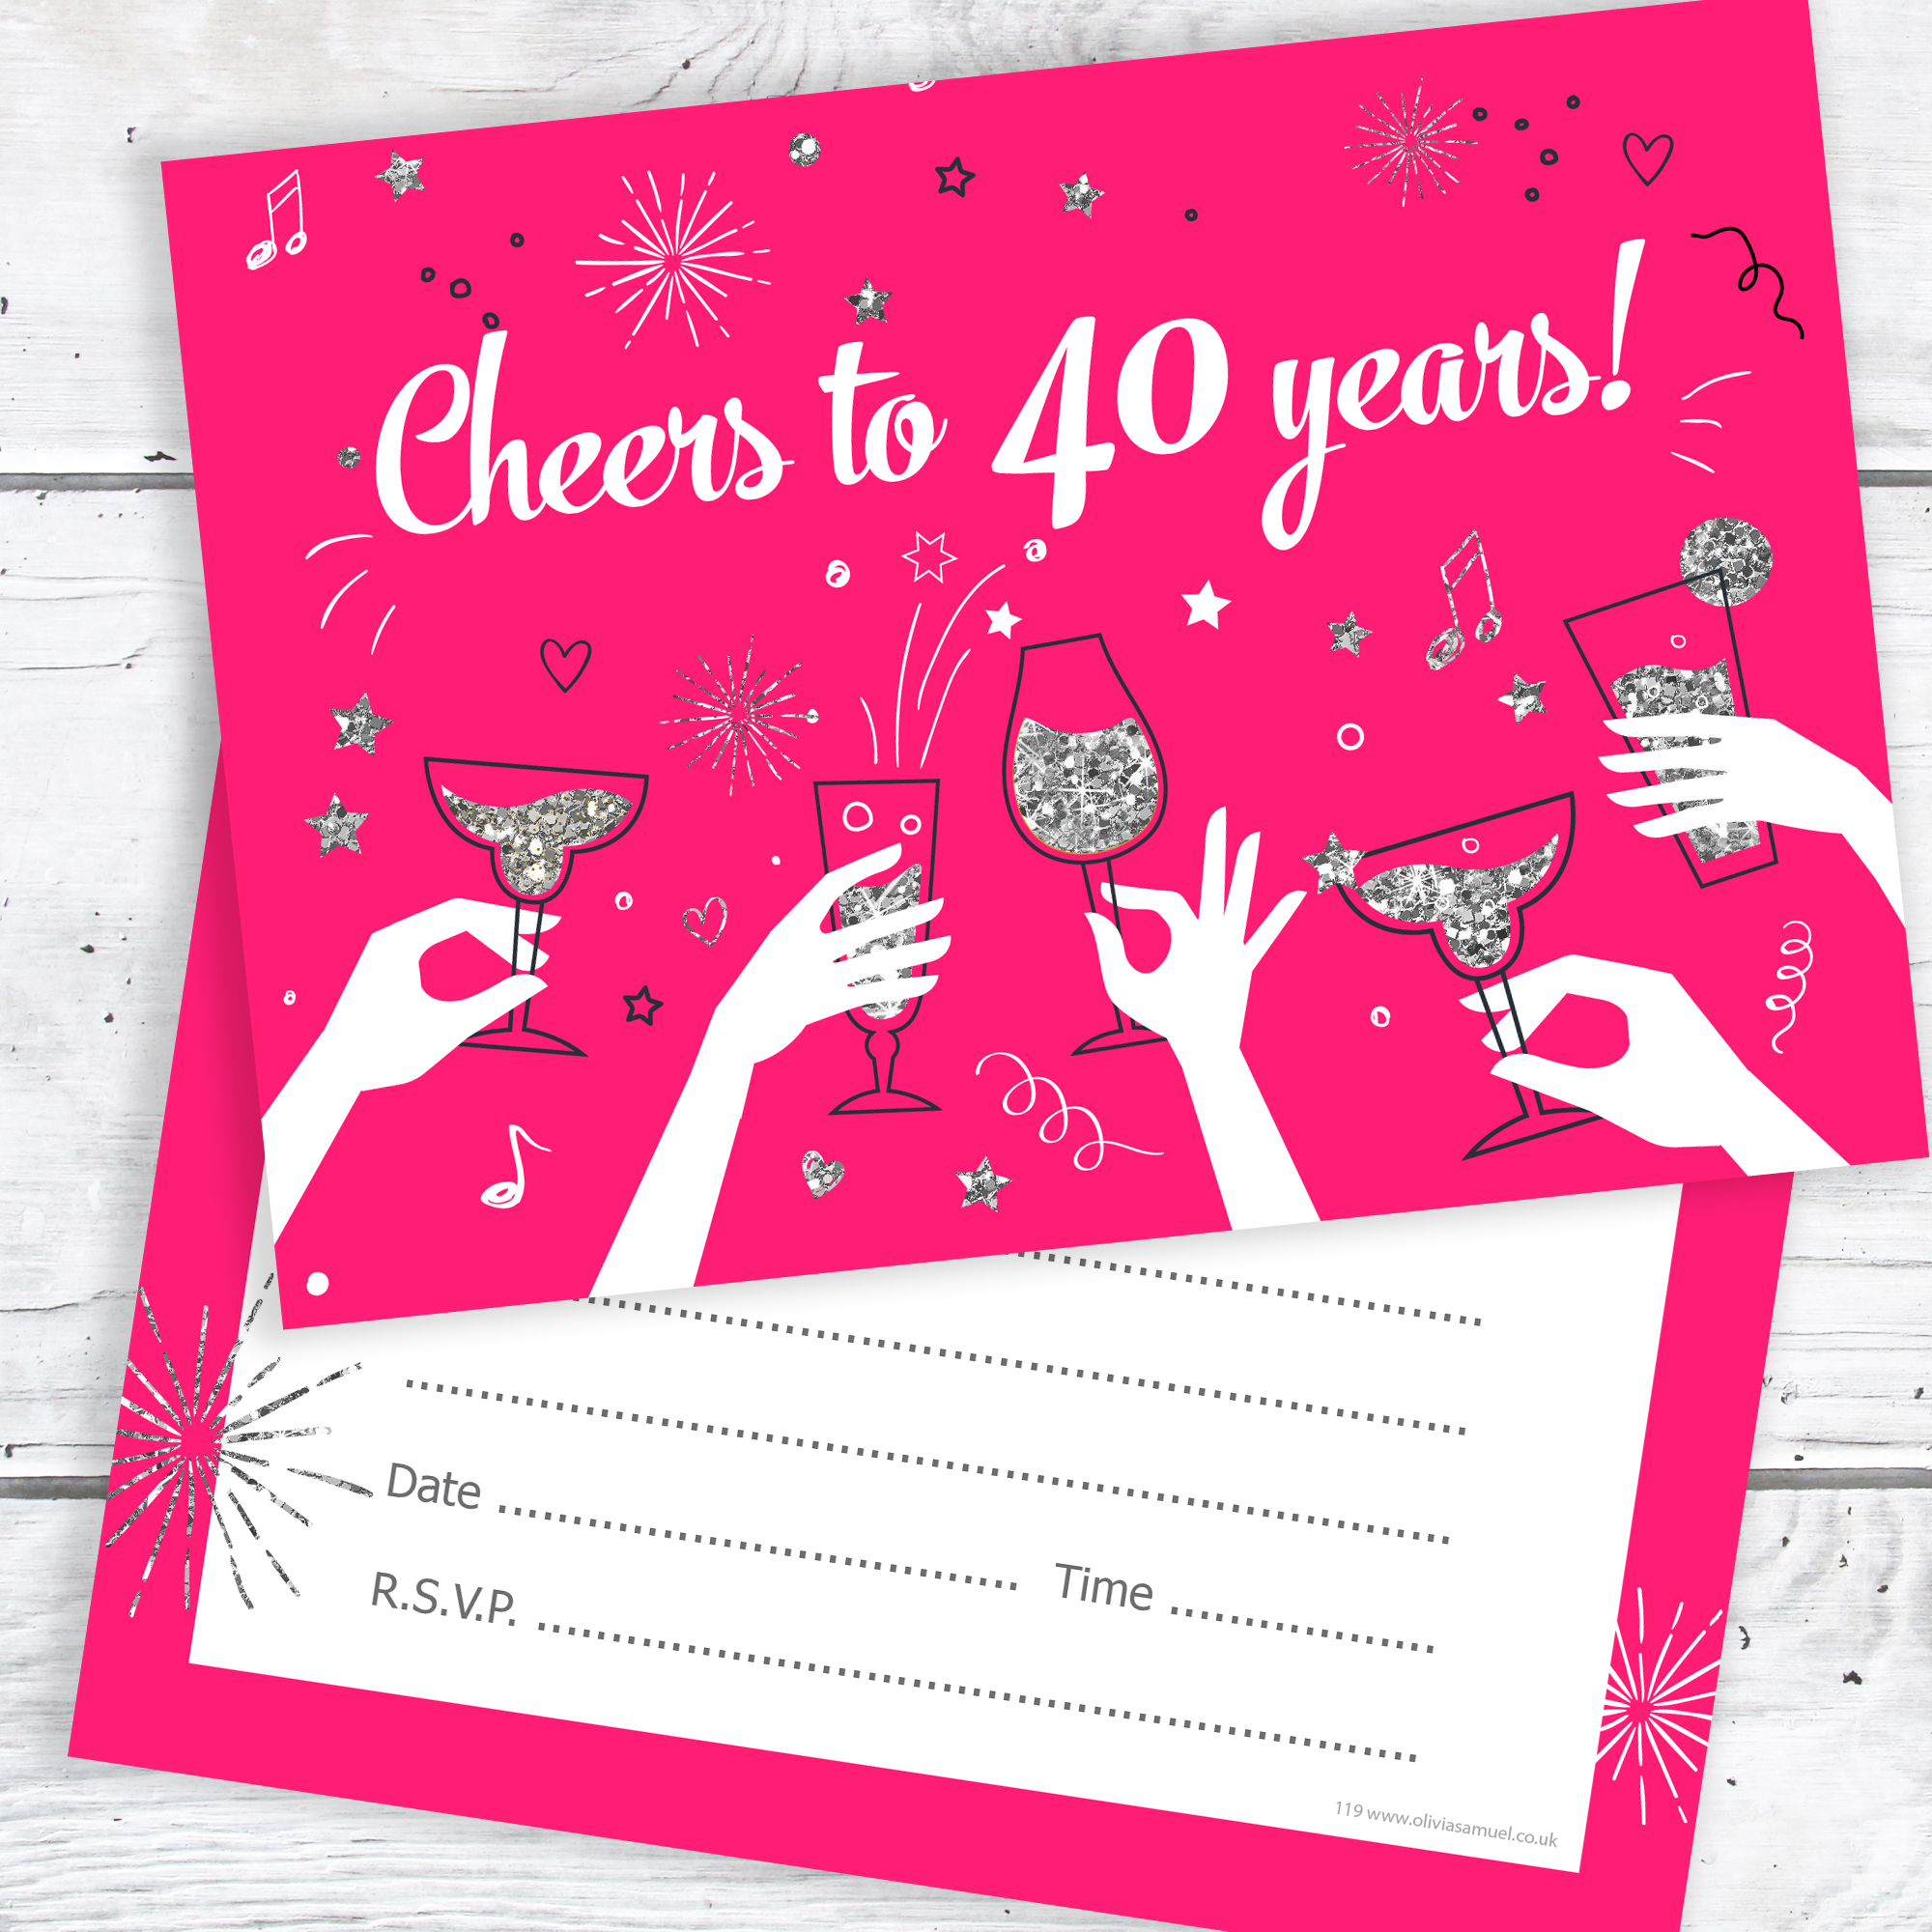 40th Birthday Party Invitations Cheers To 40 Years Ladies Pack 10